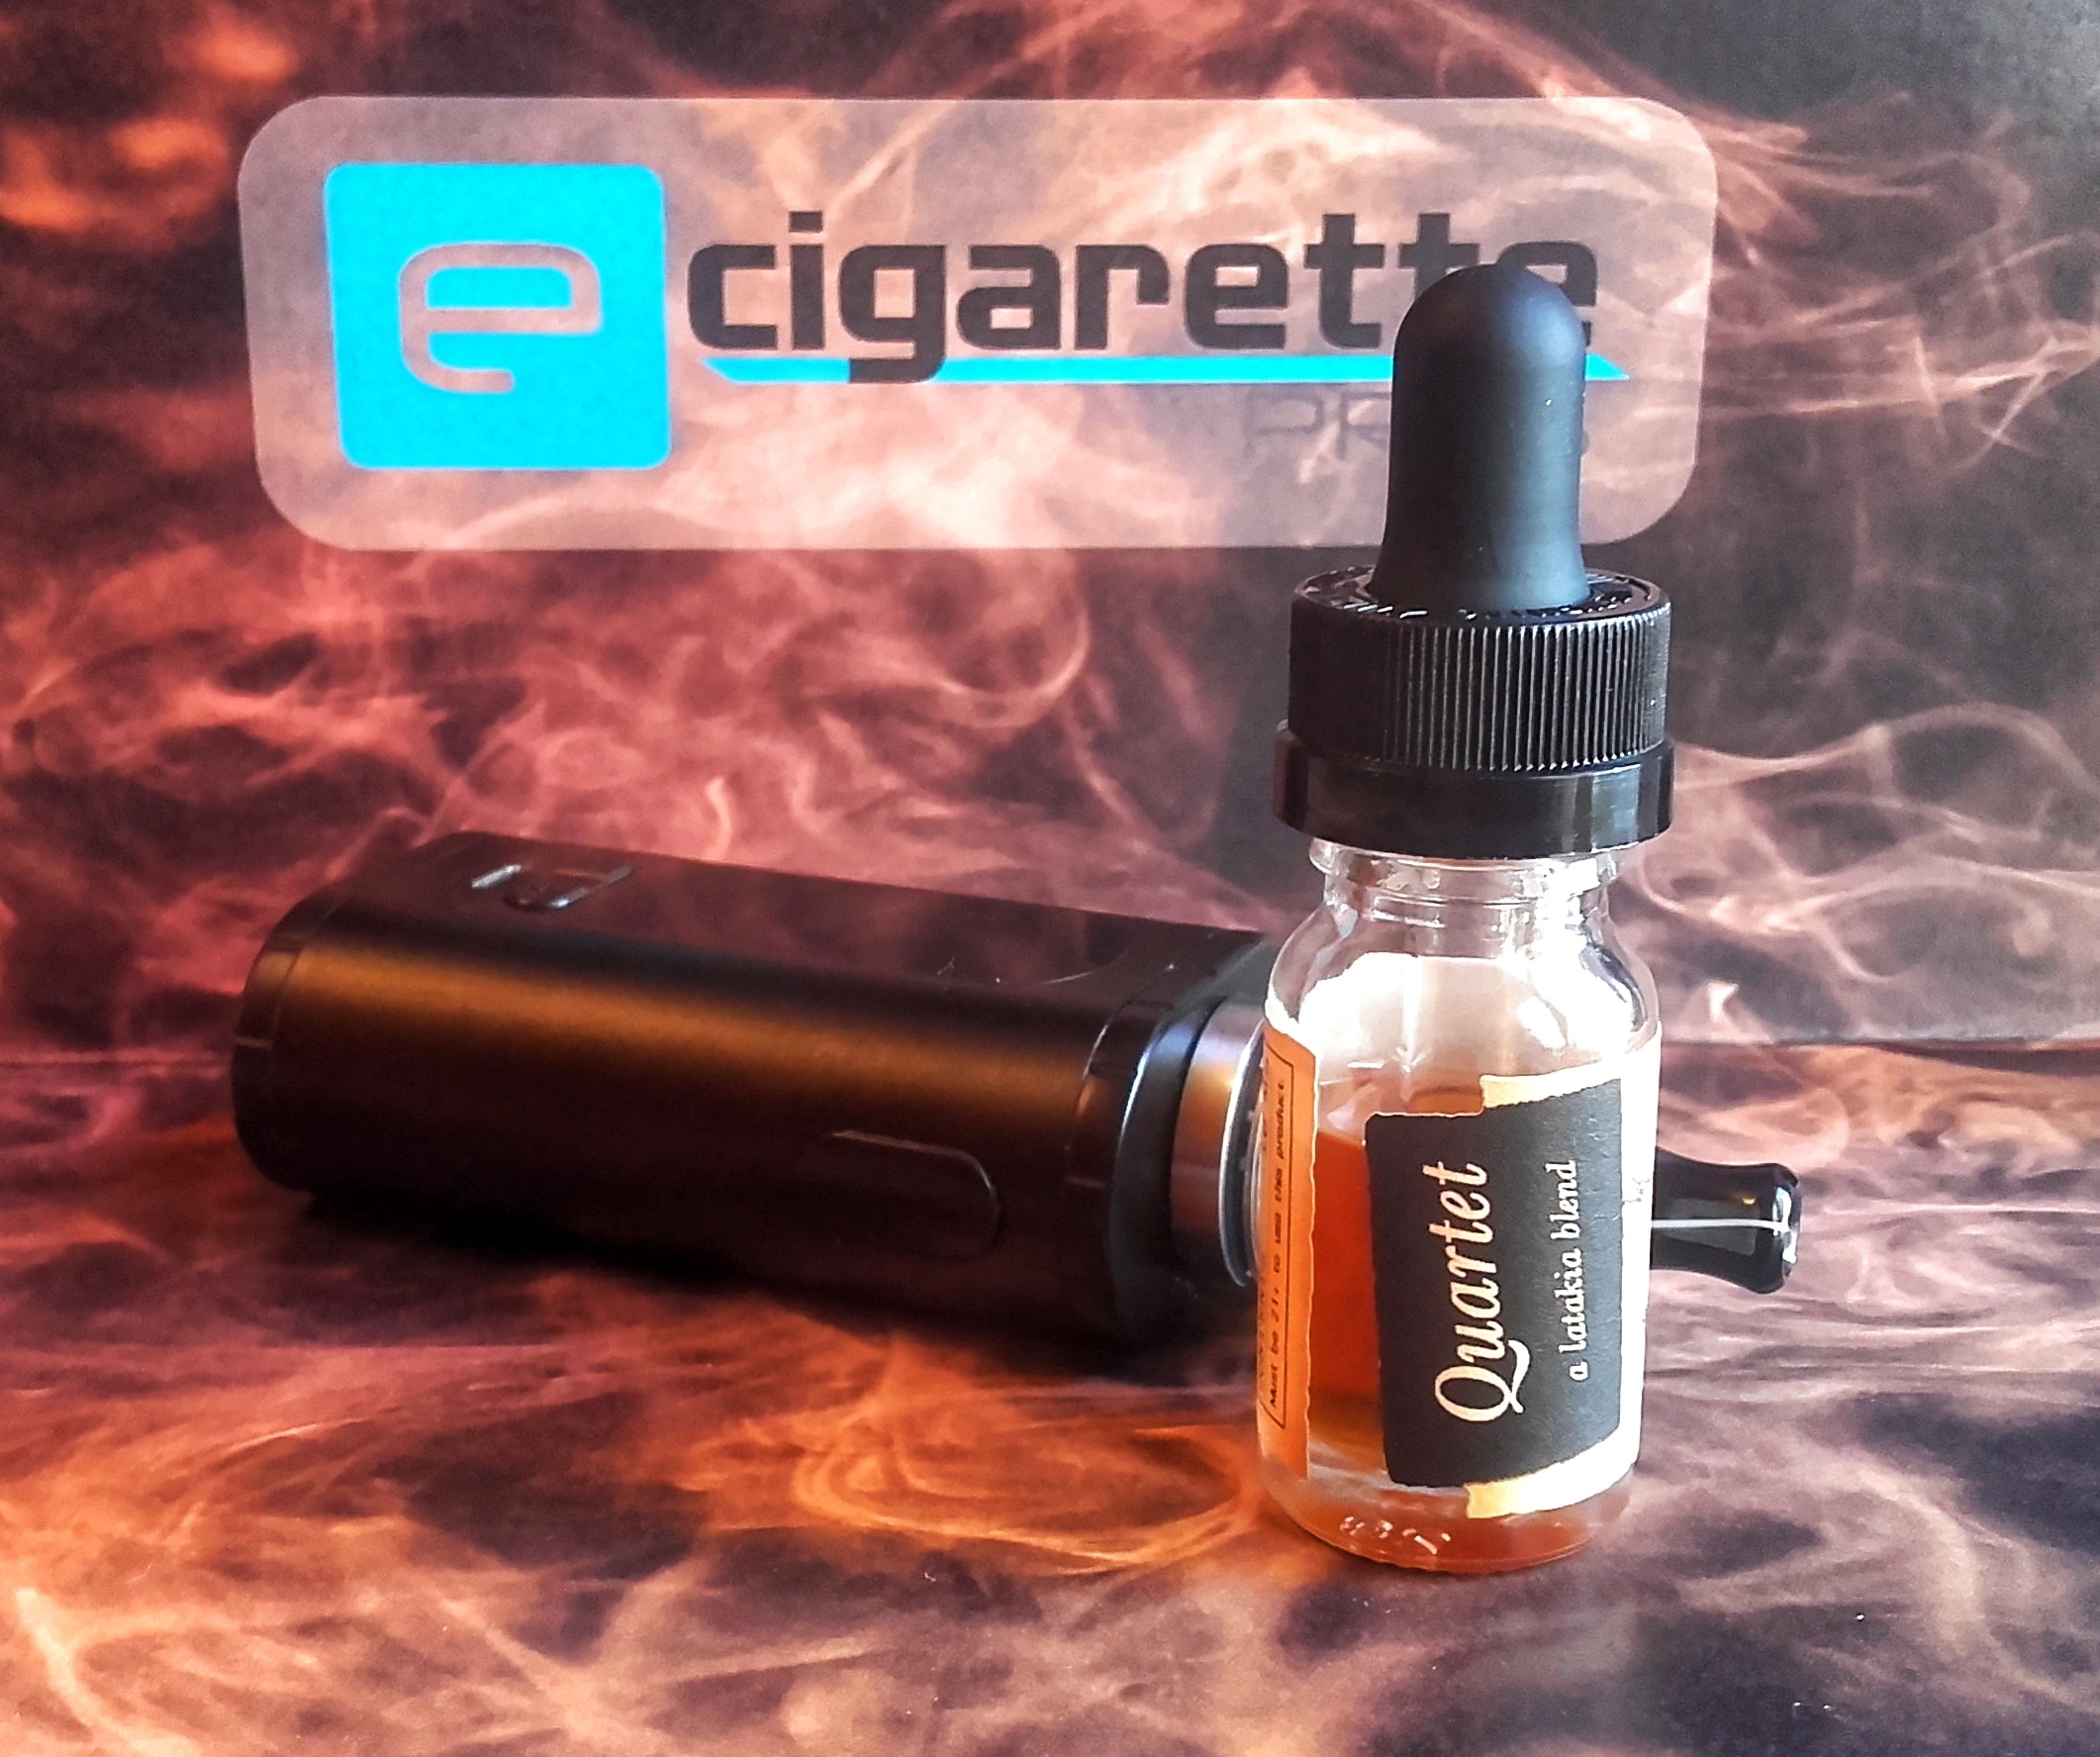 Black Note Quartet vaping liquid